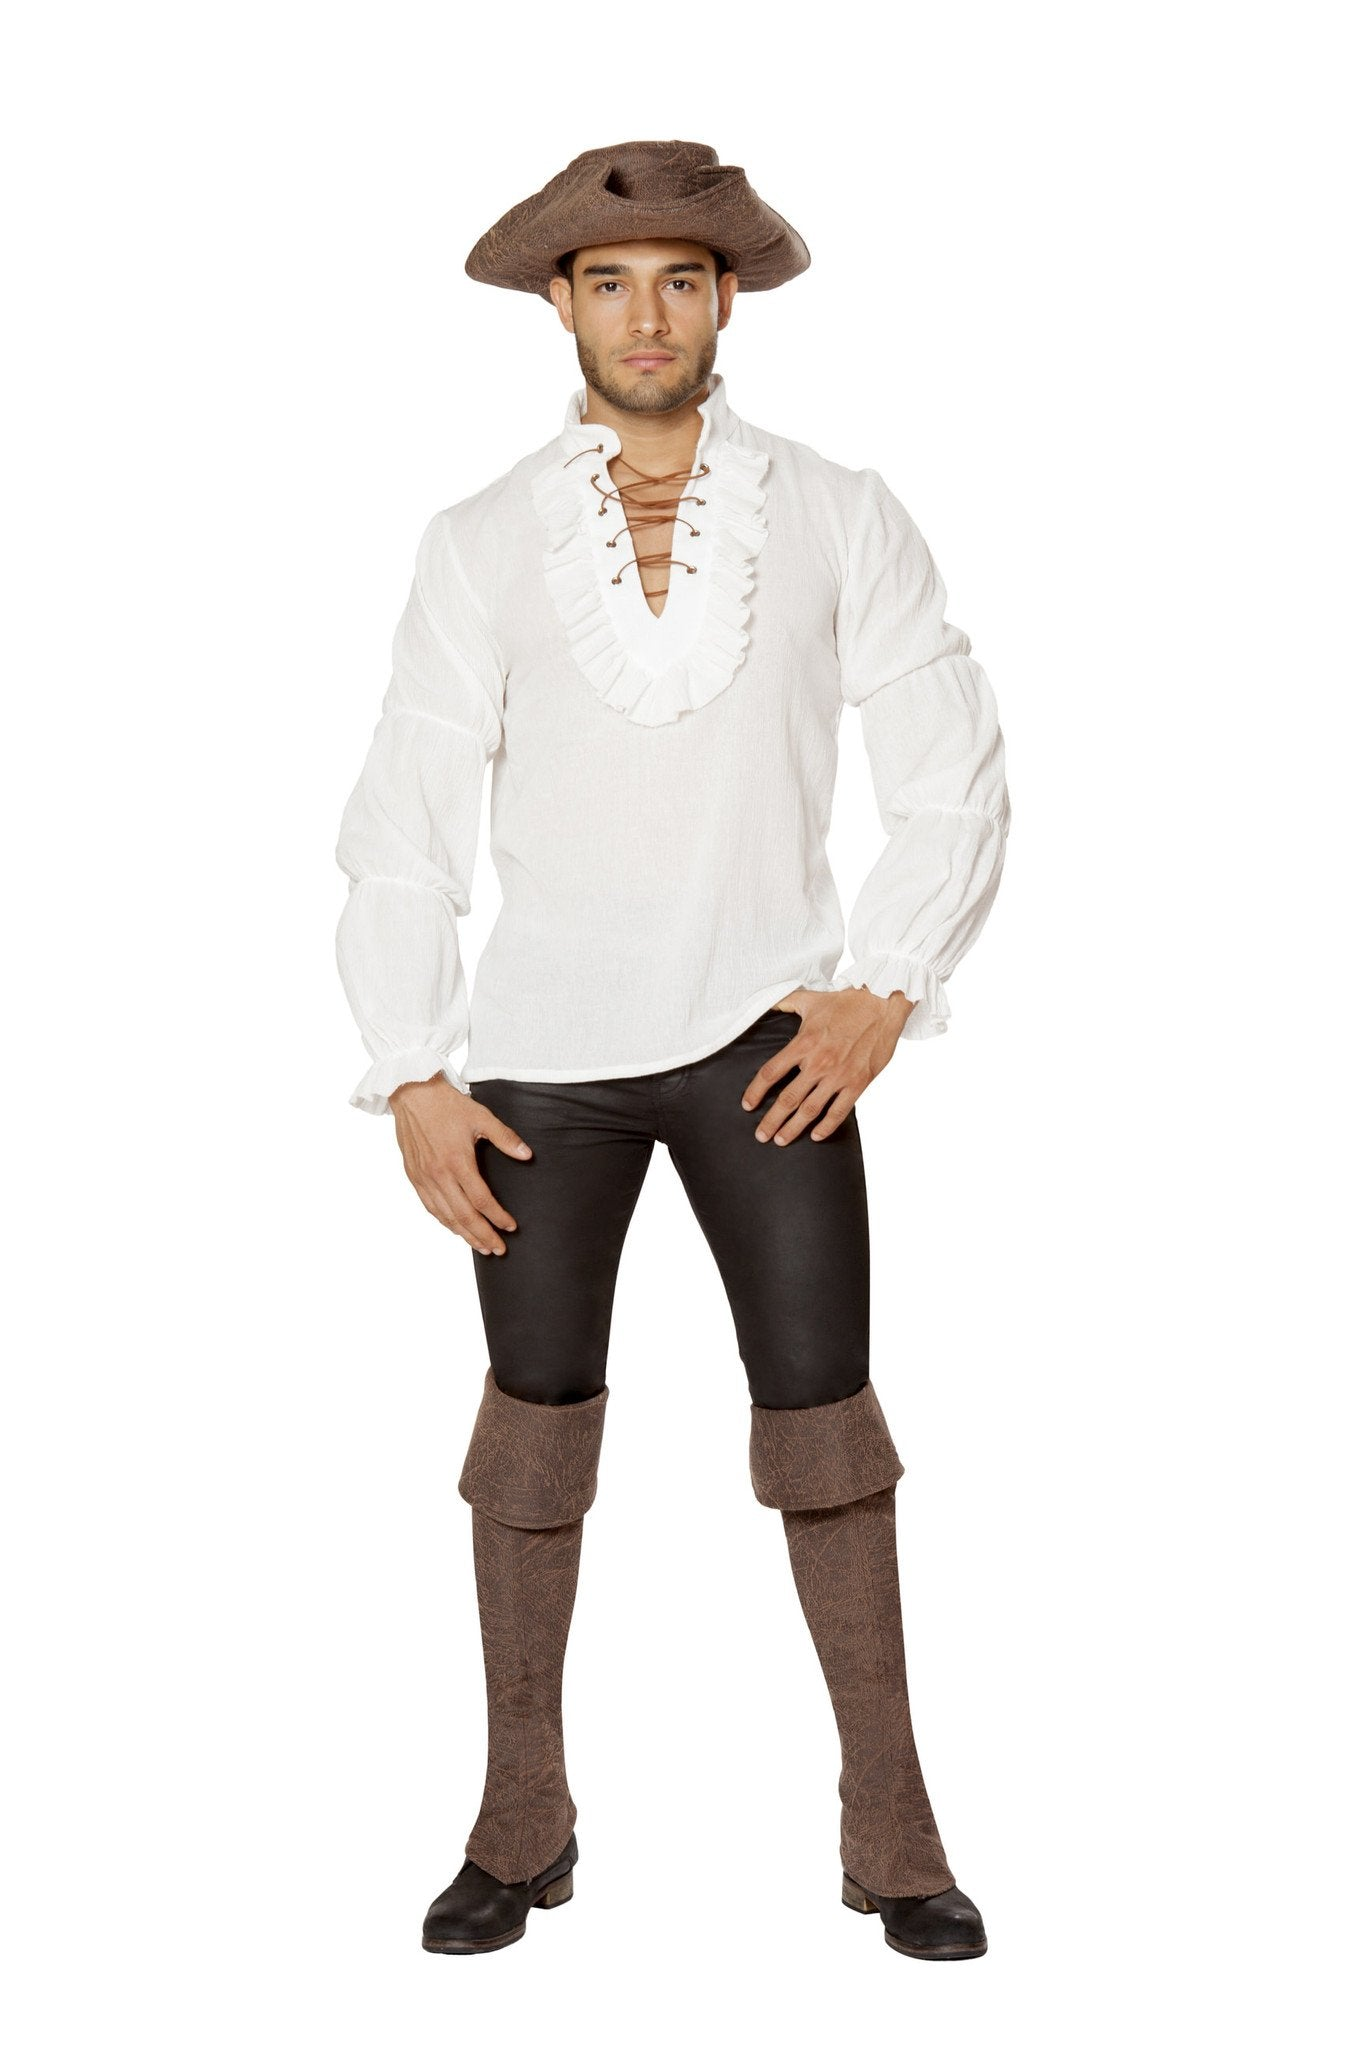 Pirate Shirt for Men Costume